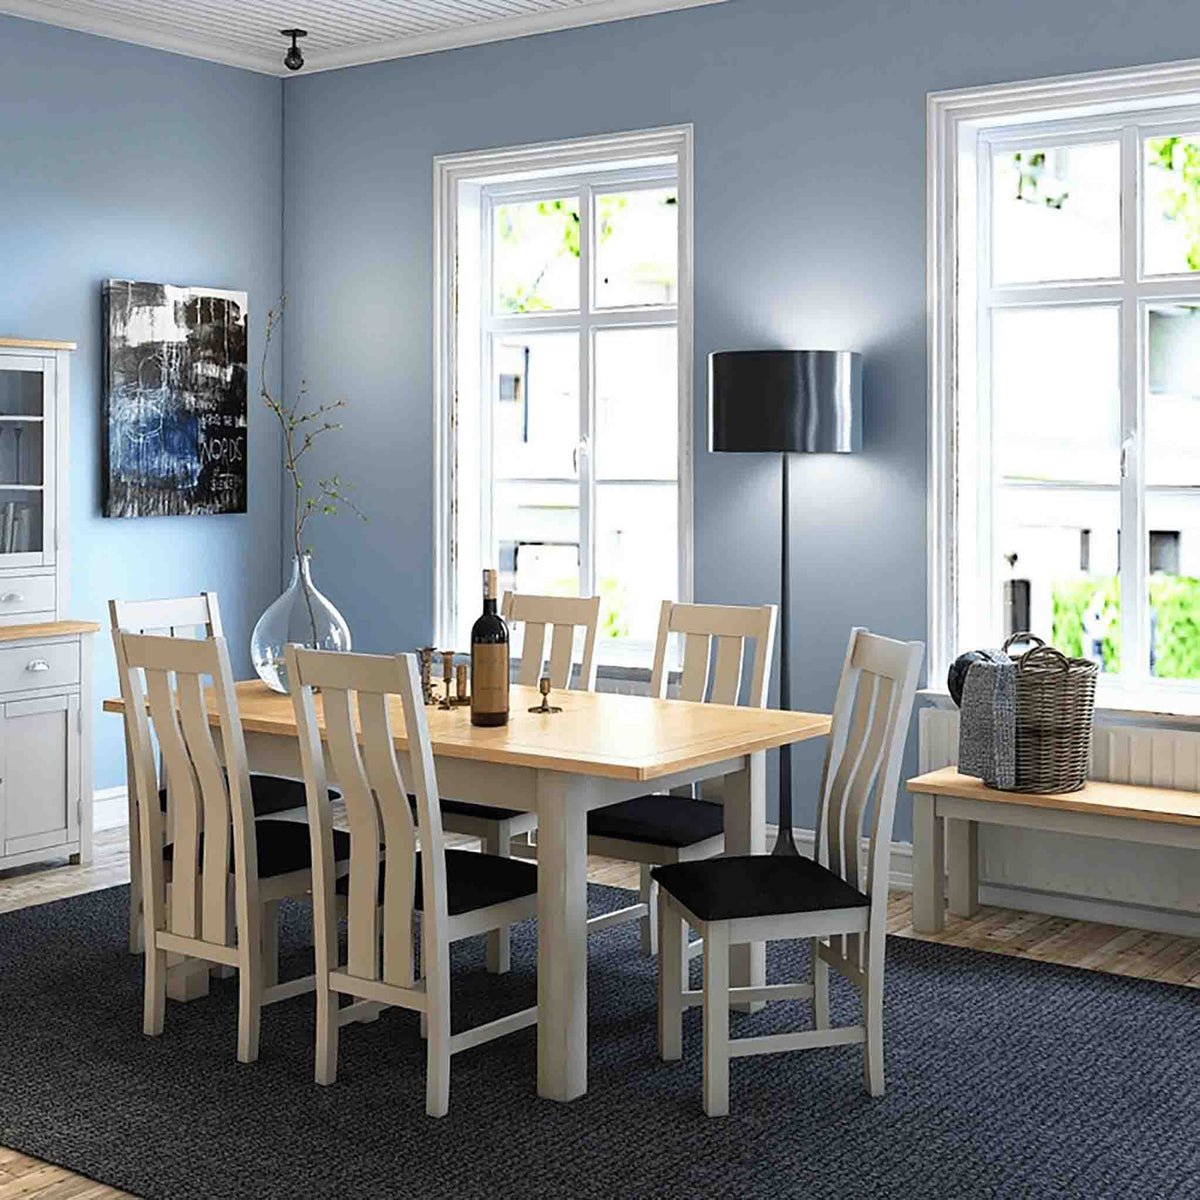 The Padstow Grey Wooden Dining Table Set with 4 Dining Chairs - Chairs Lifestyle